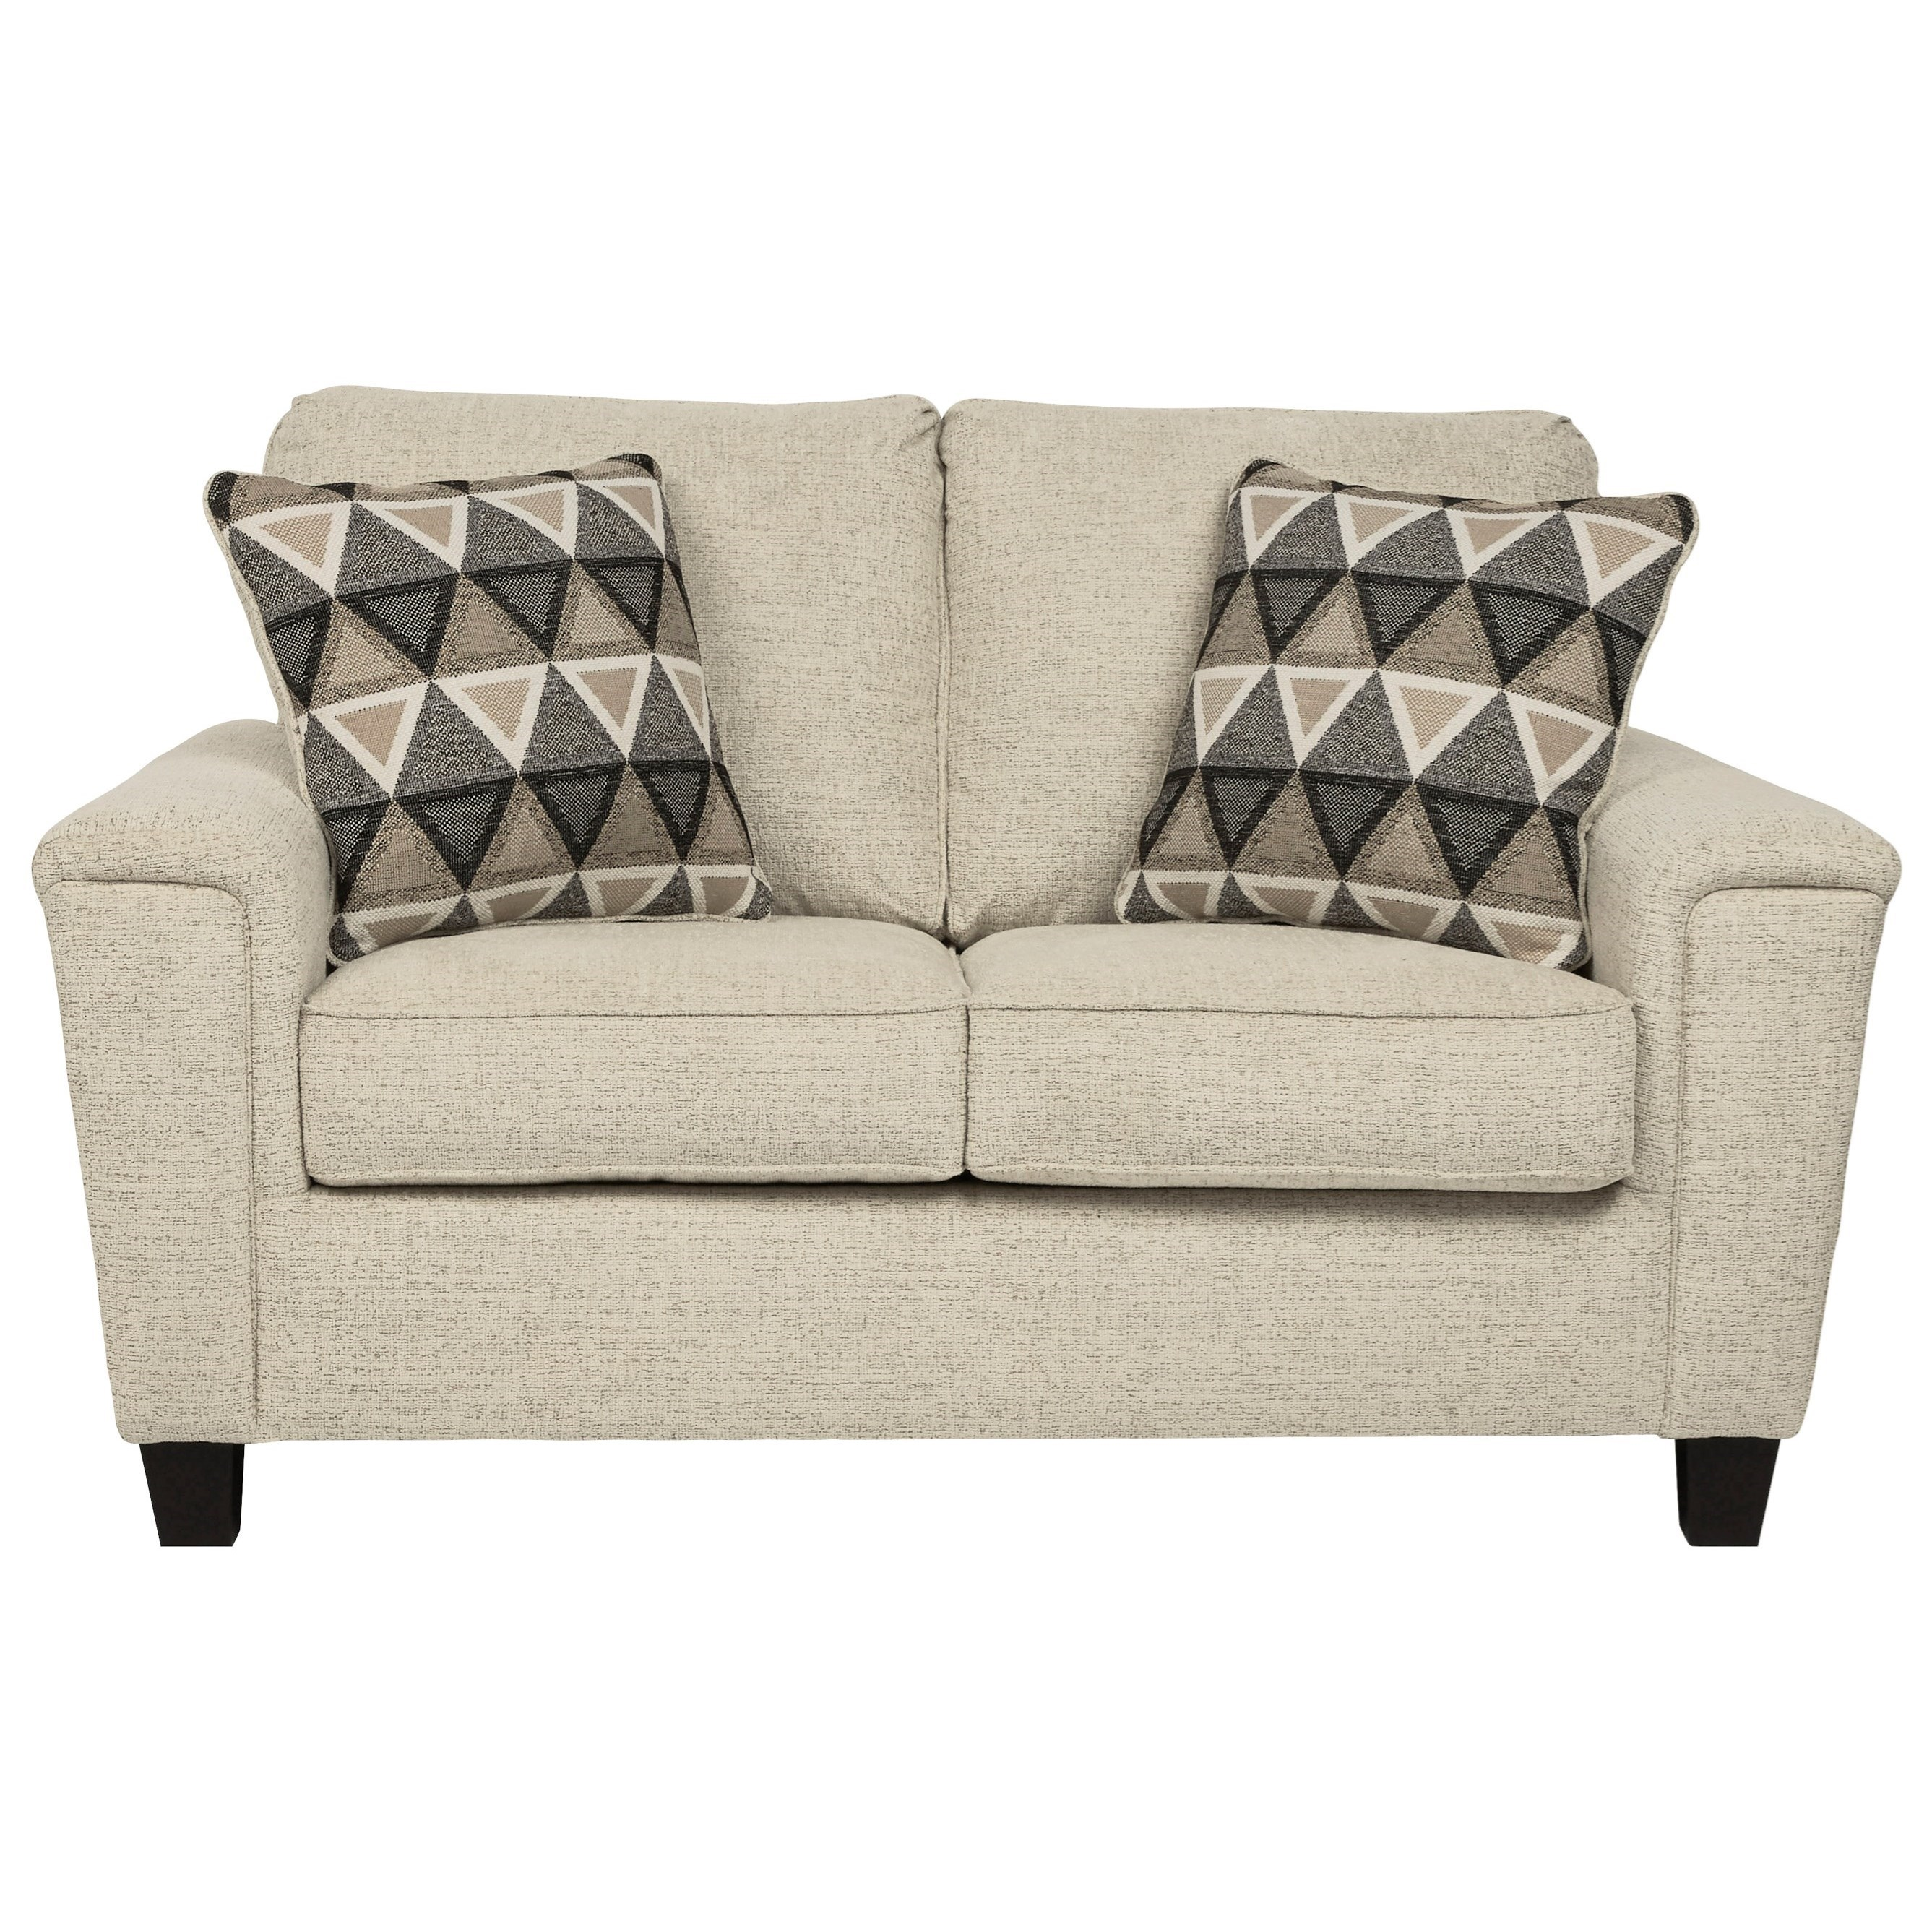 Abinger Loveseat by Signature Design by Ashley at Simply Home by Lindy's